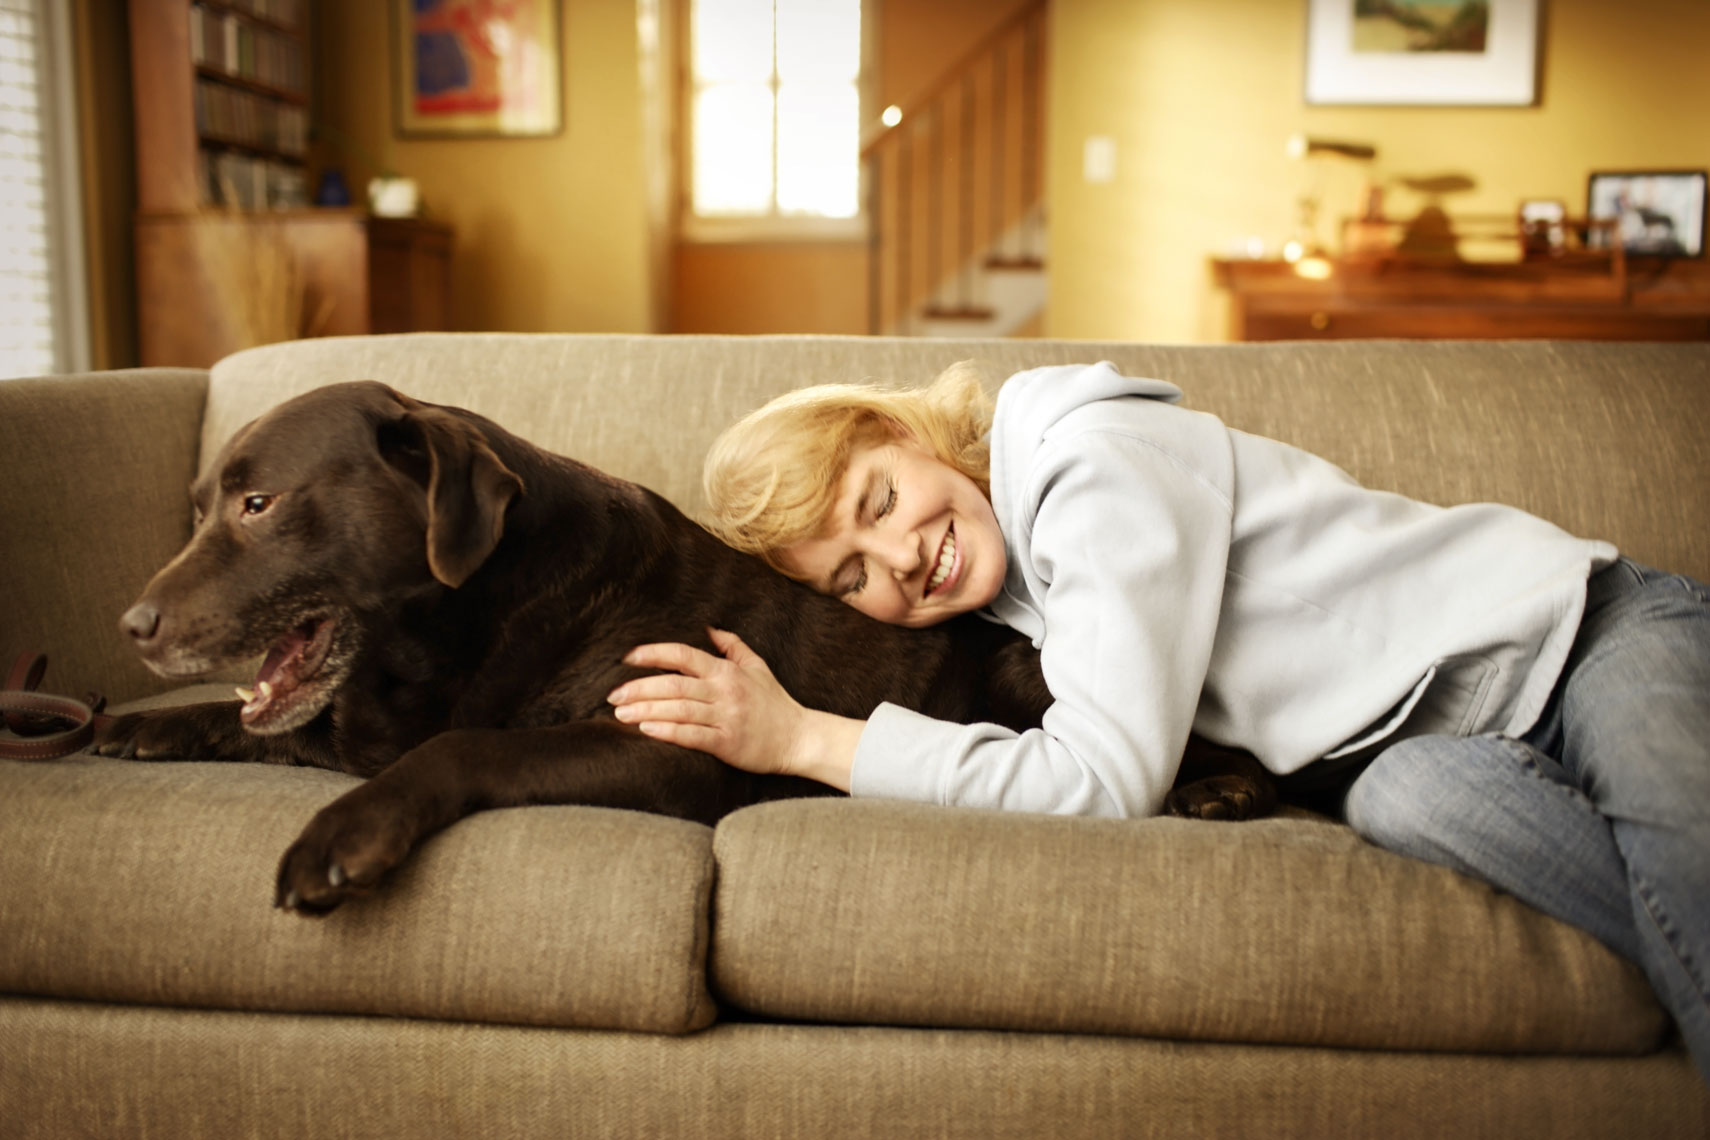 Lifestyle portrait of a woman with her dog on the couch